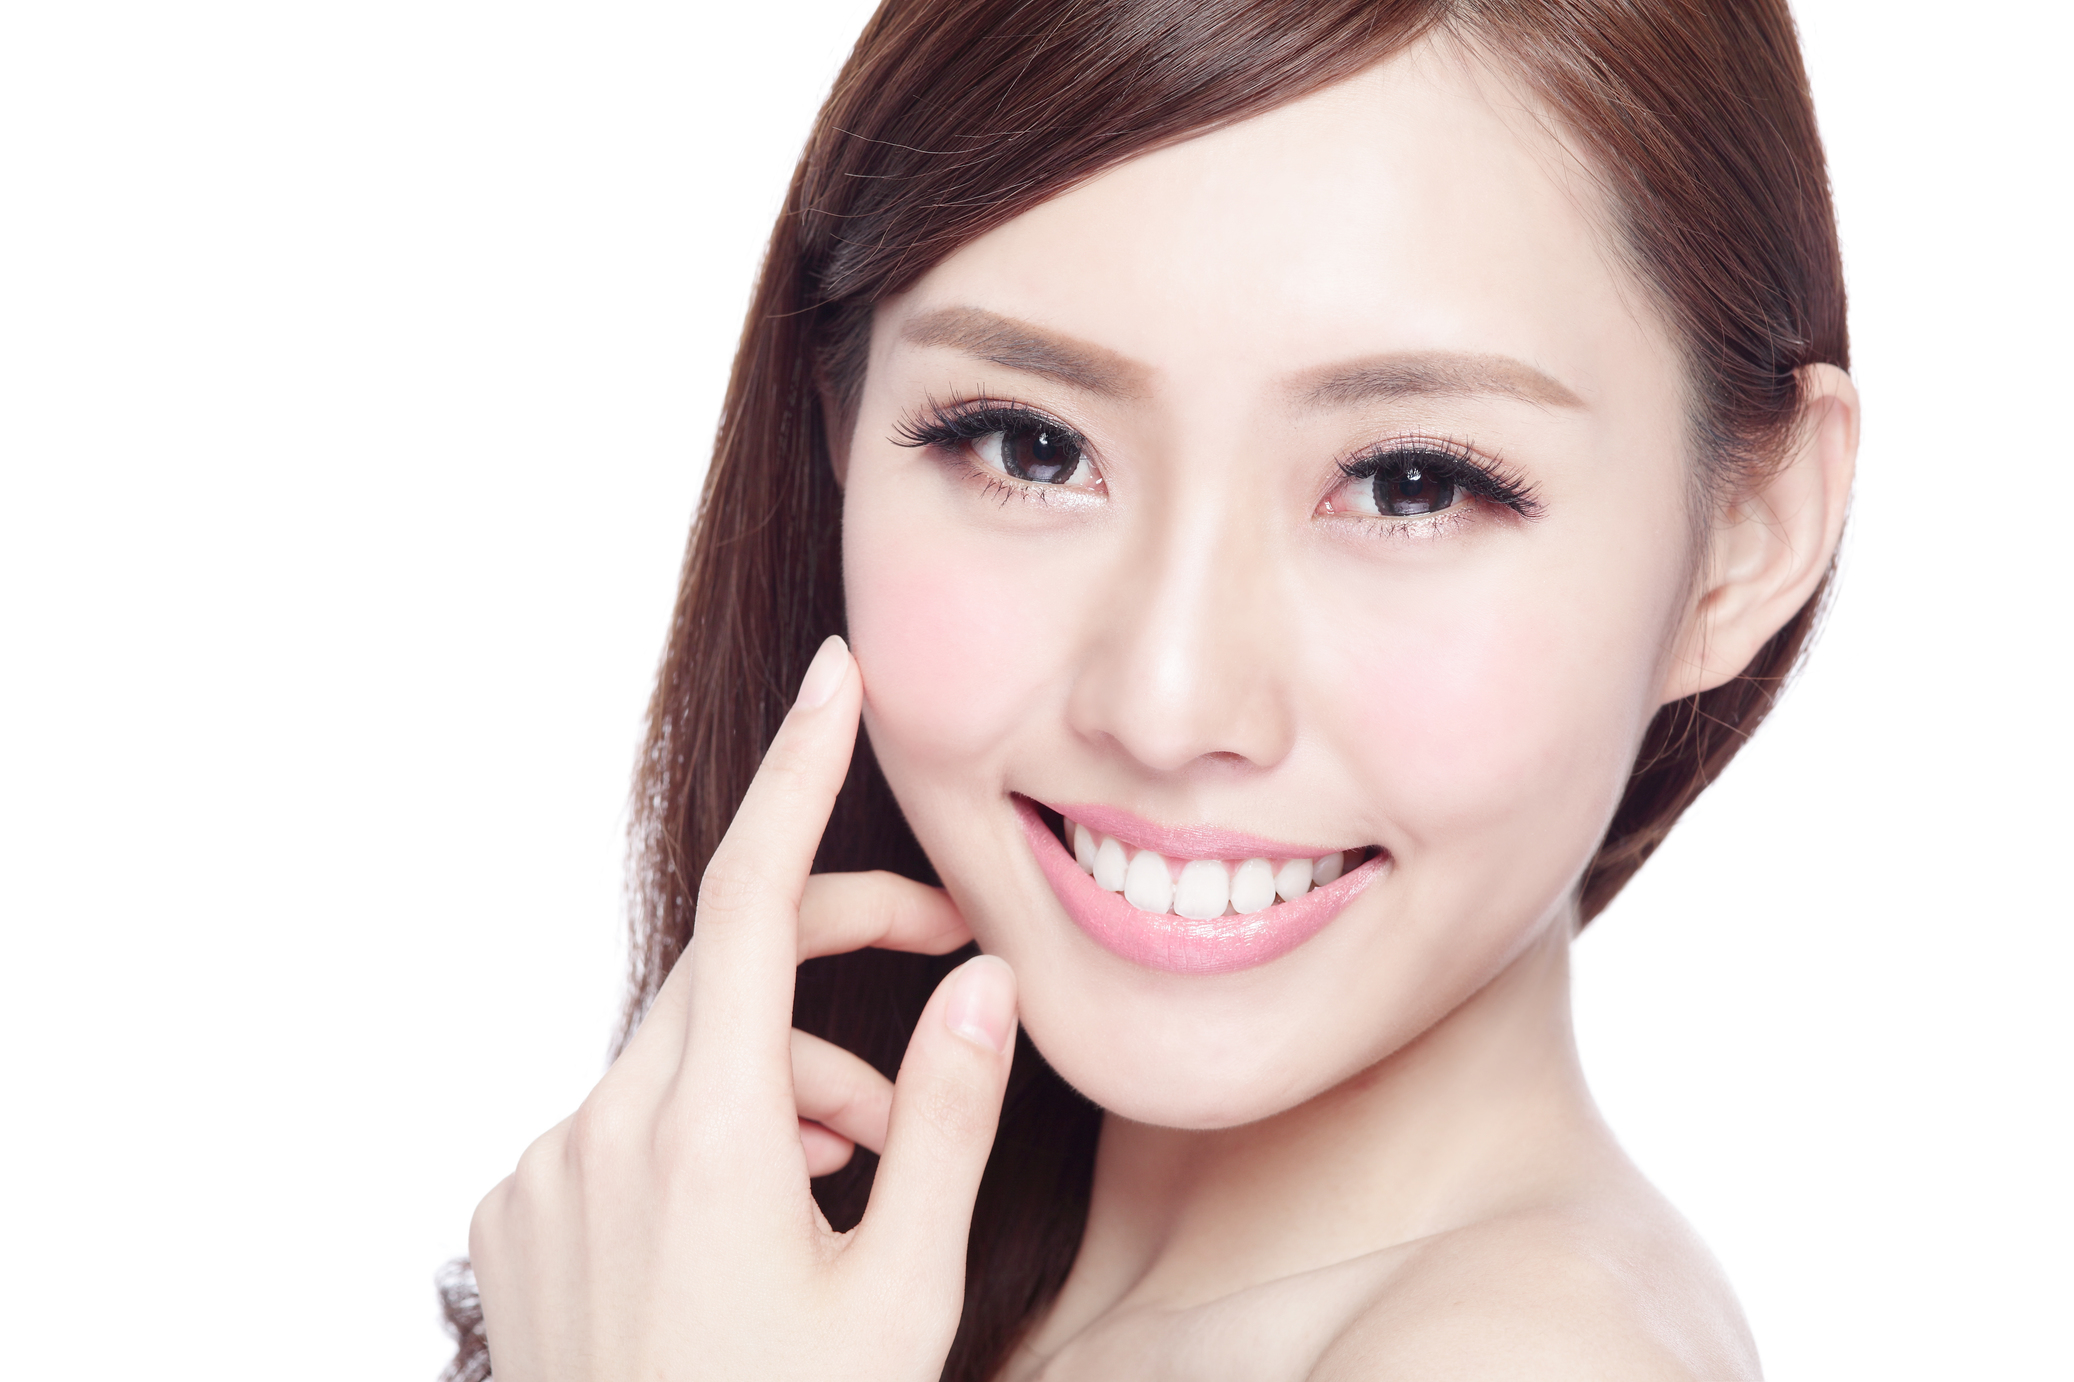 Transform Your Smile with Cosmetic Dentistry